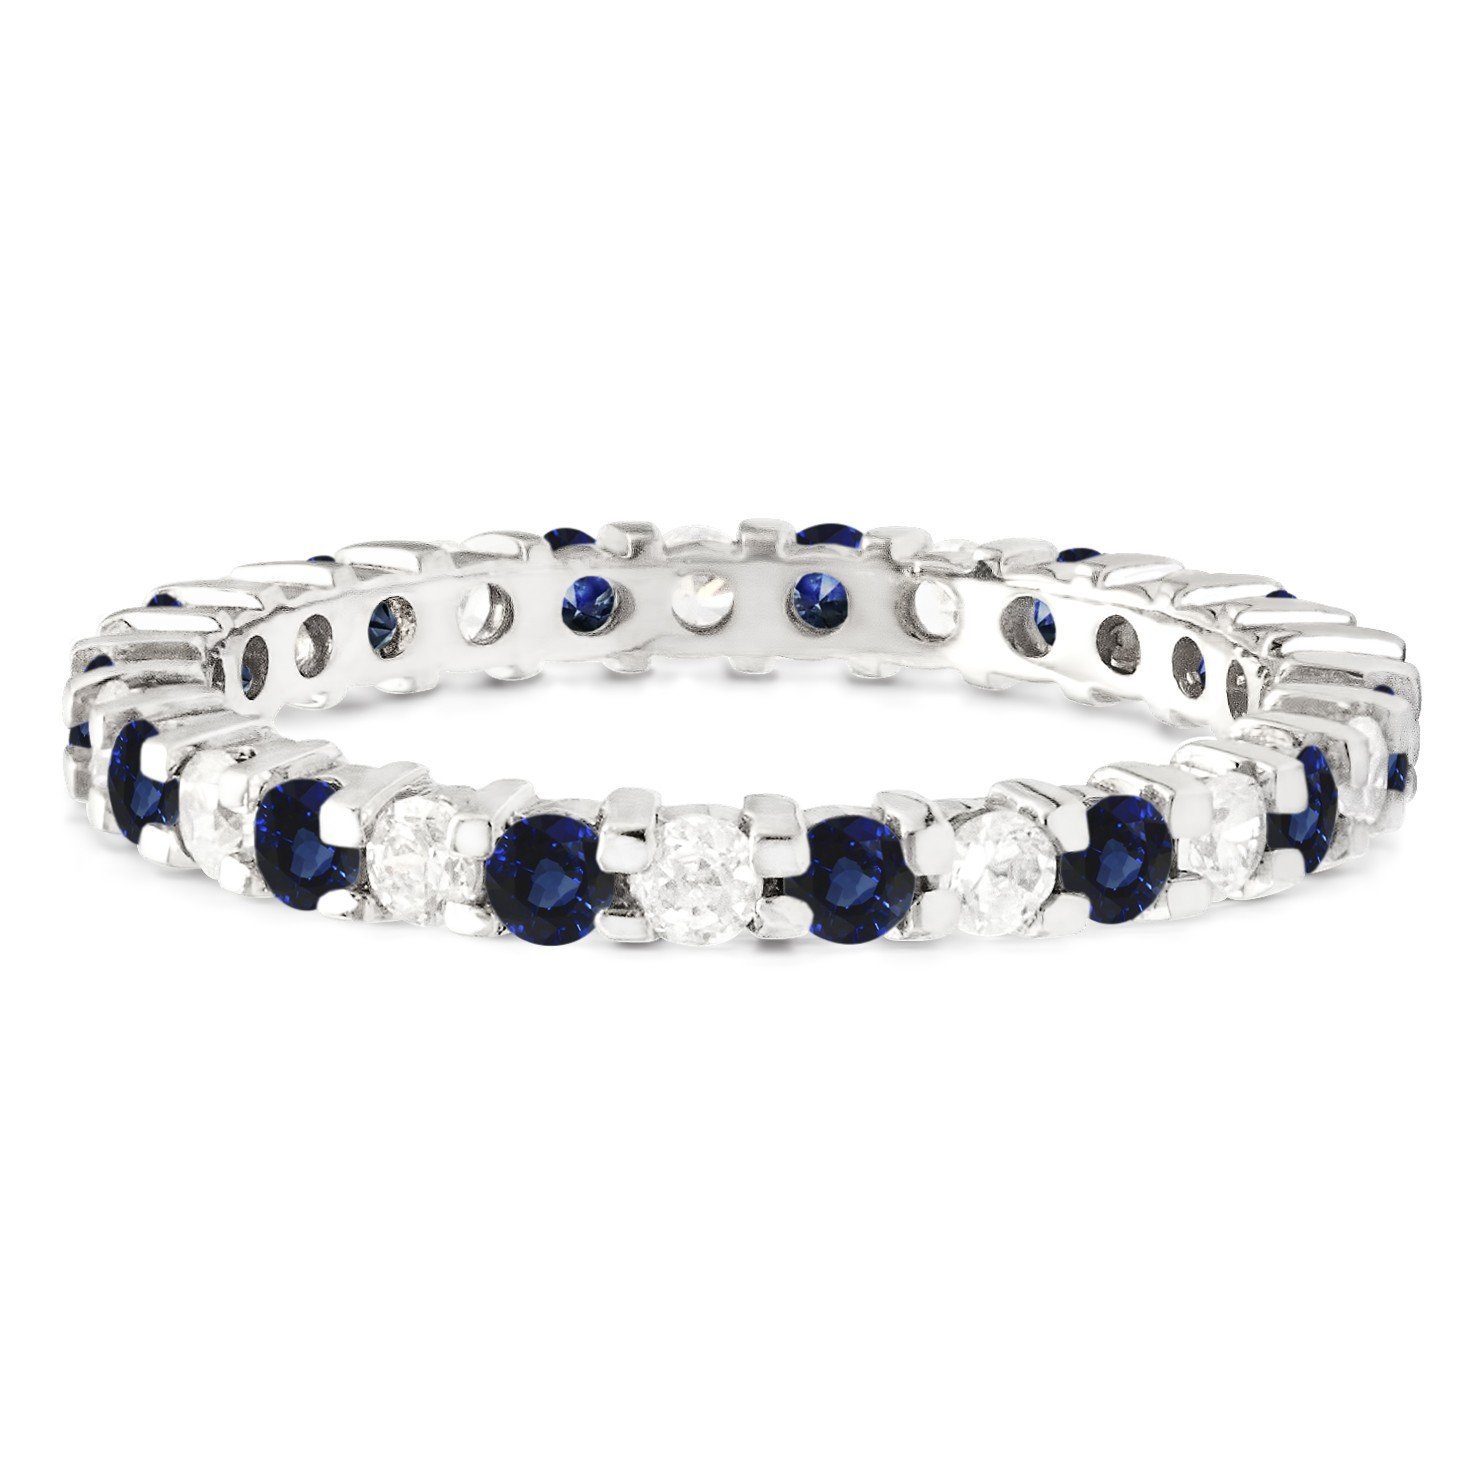 Stackable 1.7 mm Diamonds (G-H I2-I3) and Genuine Sapphire Set In Silver Double Shared Prong Eternity Ring